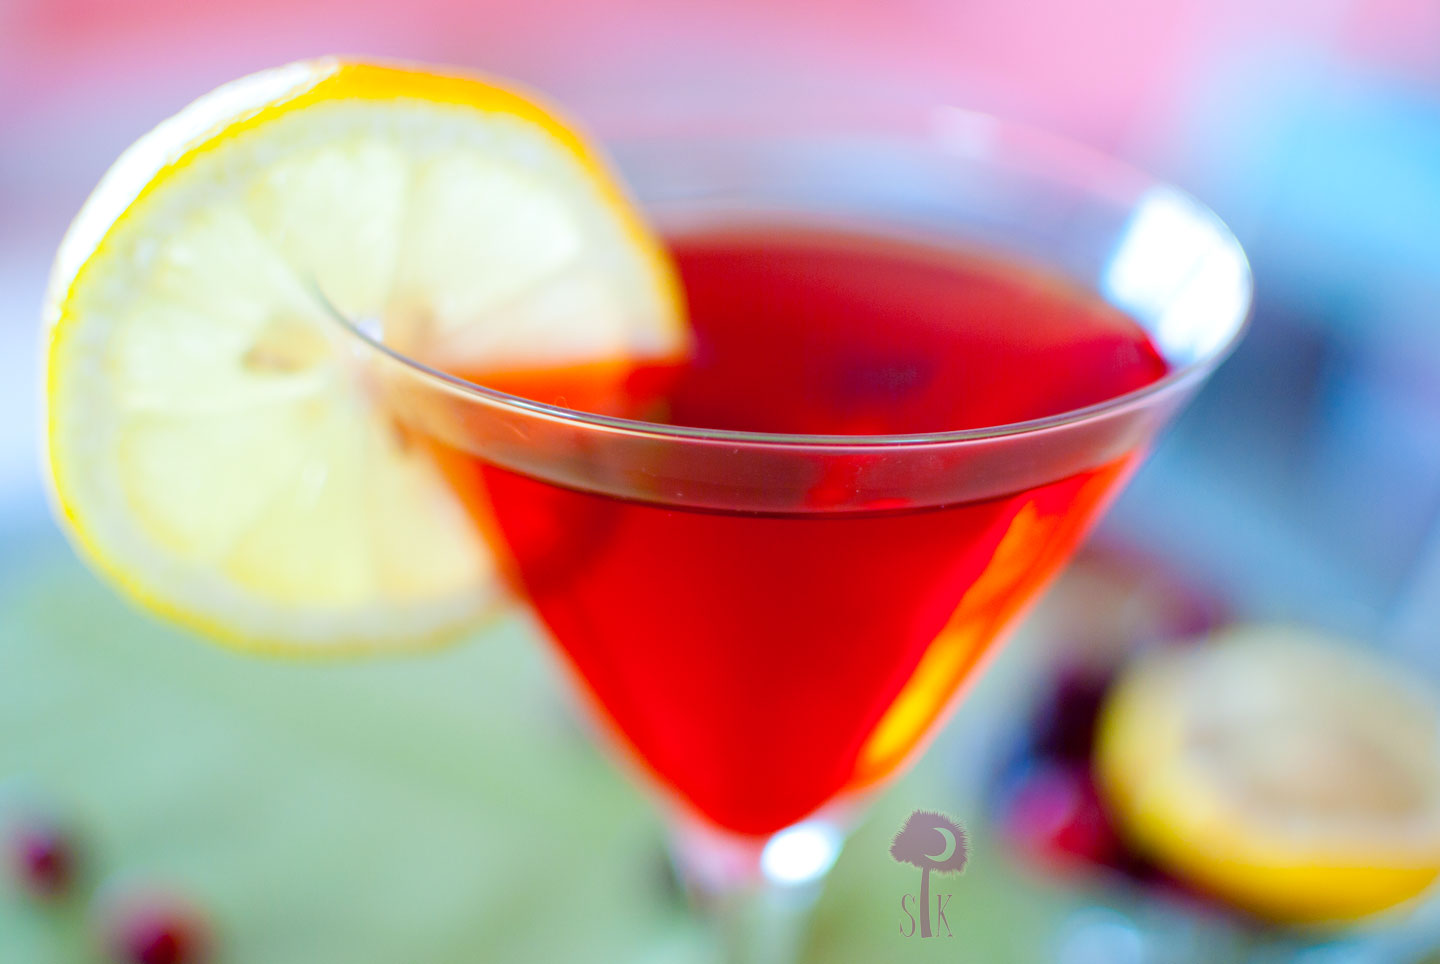 How to make a candy apple martini